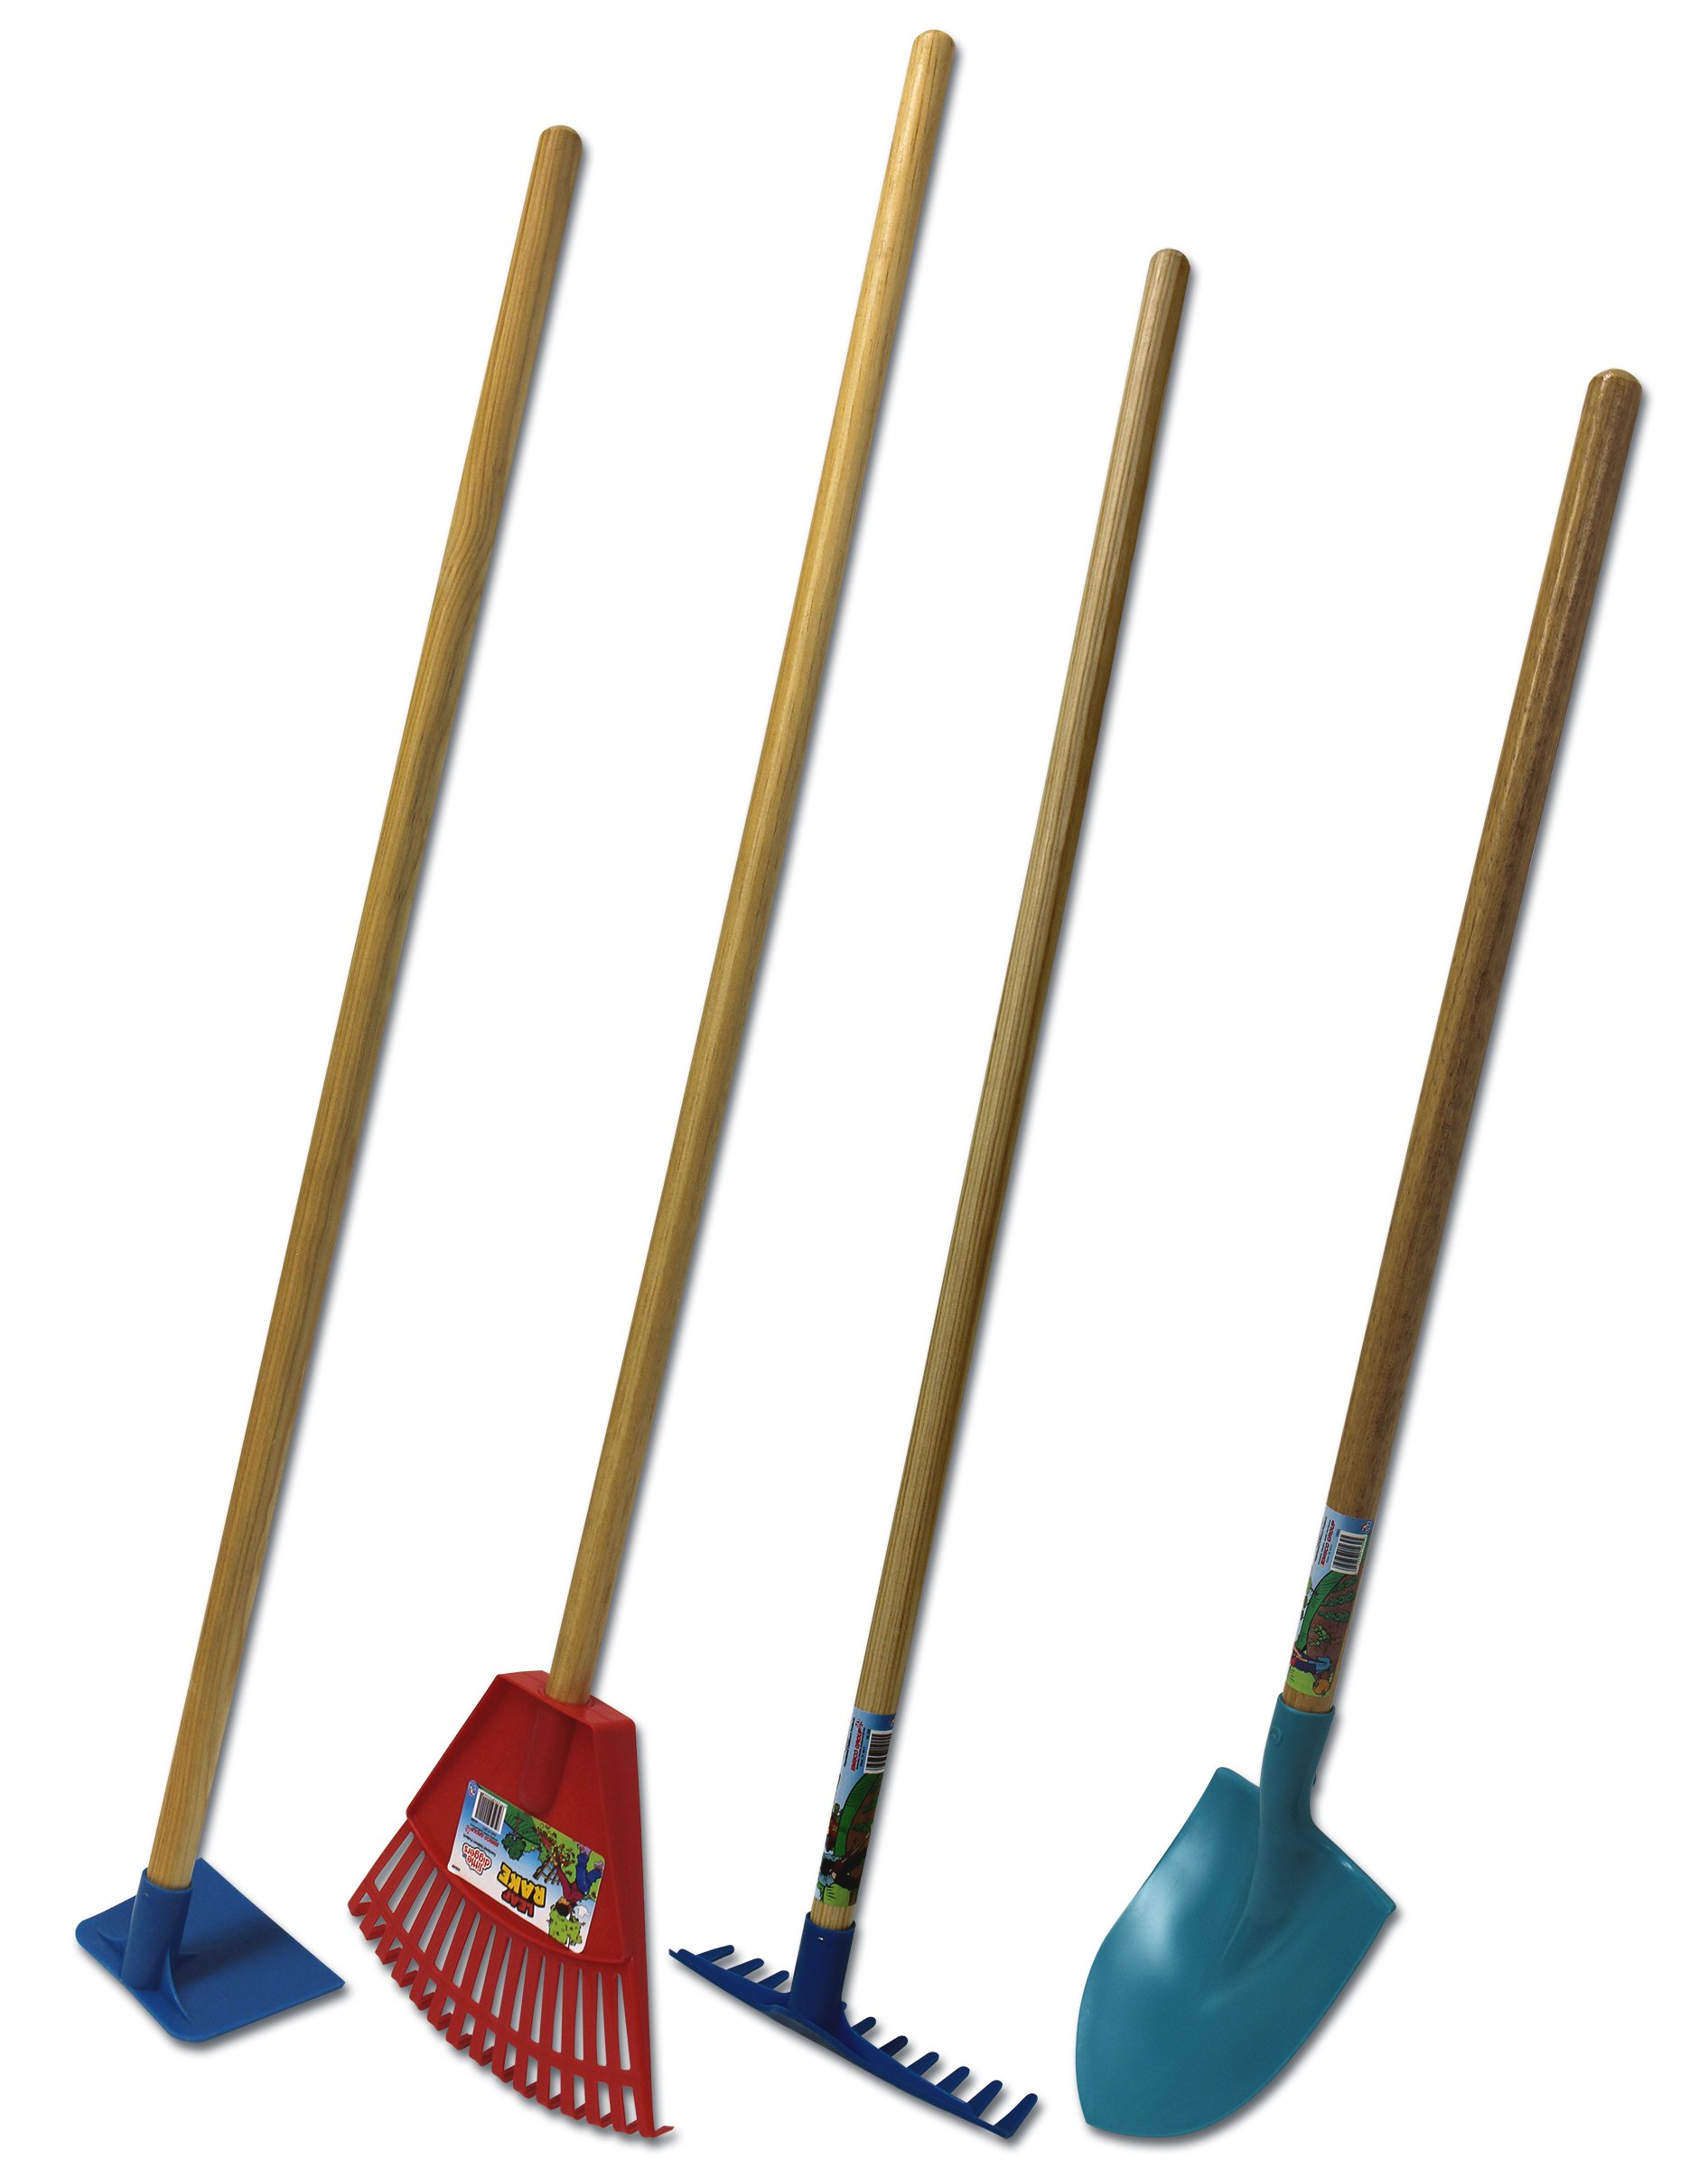 Little Diggers Kids Garden Tool Set – Four-Piece Set – Child Safe Tools – Garden with Your Kids